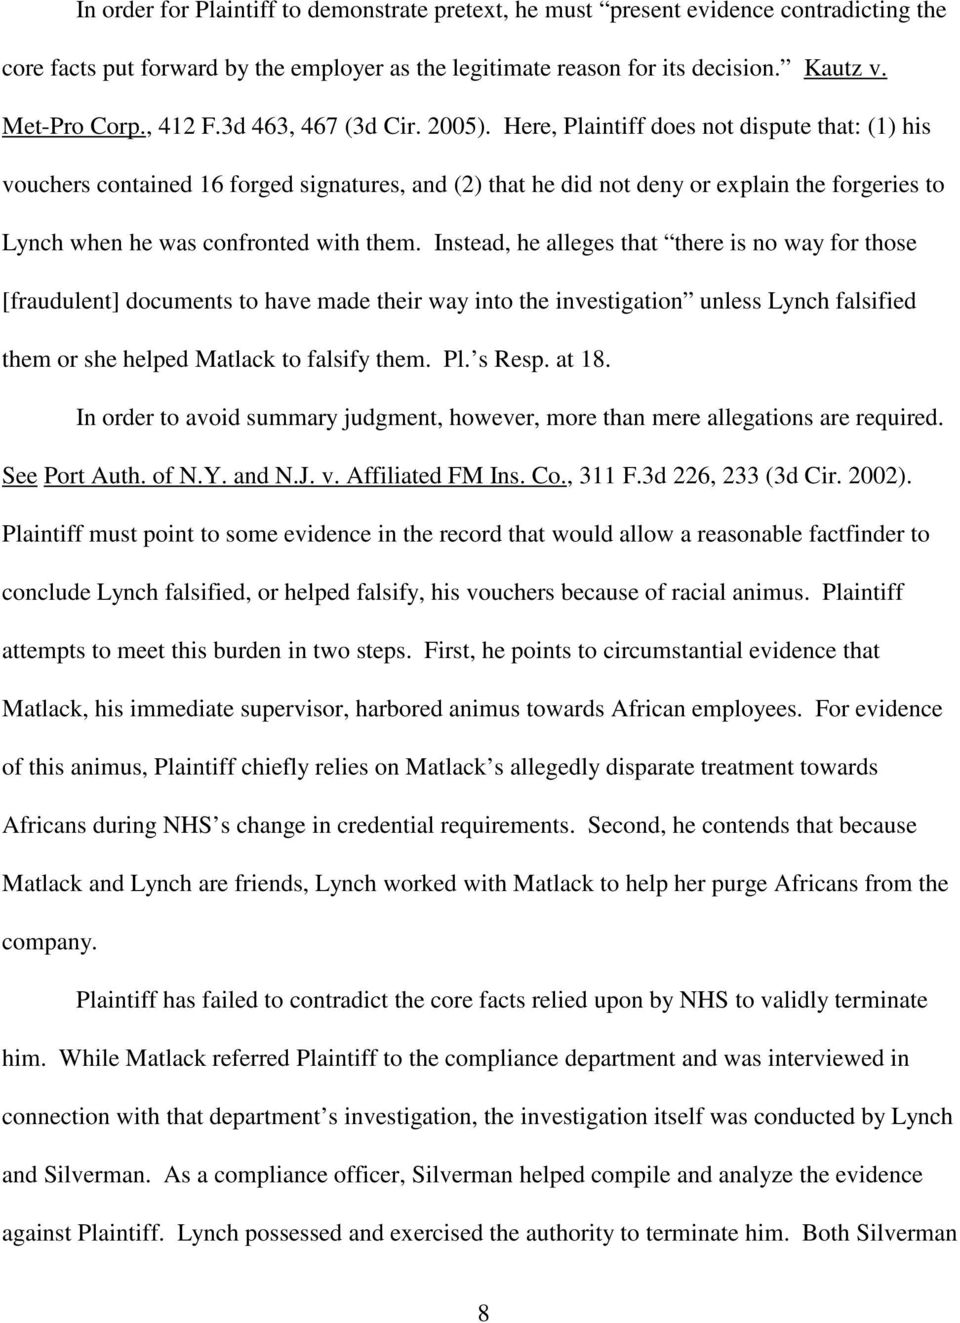 Here, Plaintiff does not dispute that (1) his vouchers contained 16 forged signatures, and (2) that he did not deny or explain the forgeries to Lynch when he was confronted with them.